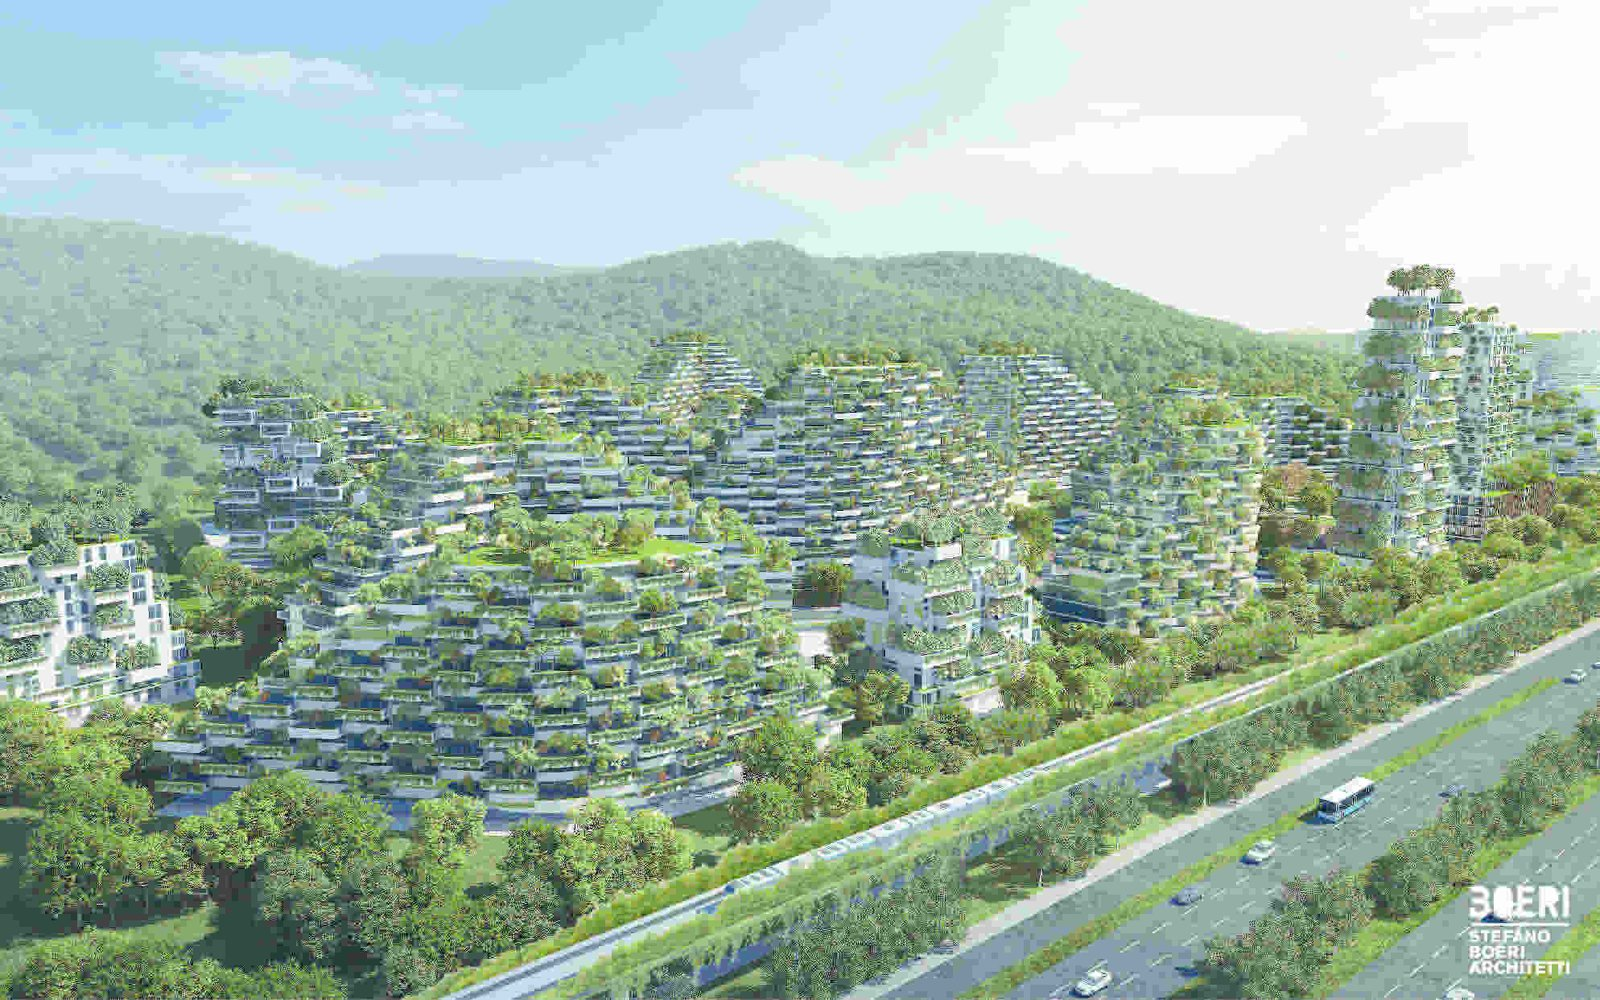 Photo 3 of 6 in A Green City in China That Will Play a Major Role in Fighting Air Pollution